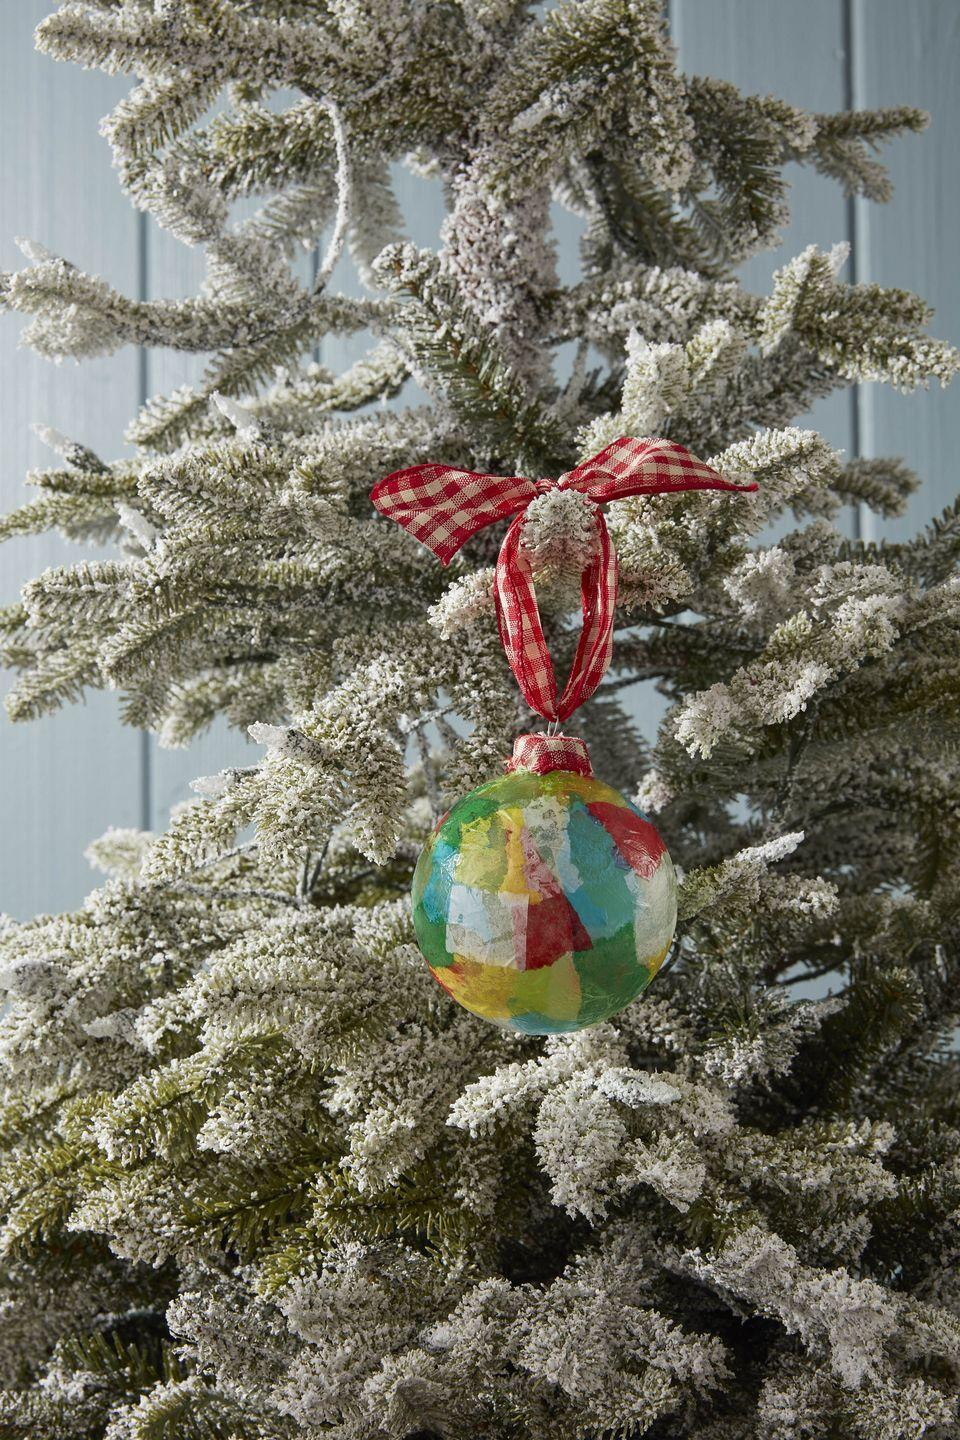 "<p>As simple as tearing and gluing this sweet and colorful ornament will take longer to dry than it does to make.</p><p><strong>To make:</strong> Tear colorful tissue paper into small pieces. Attach to a clear glass or plastic ball ornament with glossy Mod Podge. Attach a small piece of ribbon or fabric over the ornament cap. Hang to dry.</p><p><a class=""link rapid-noclick-resp"" href=""https://www.amazon.com/Darice-2610-42-6-Piece-Heavy-Glass/dp/B002Z1WFVE/ref=sr_1_1_sspa?tag=syn-yahoo-20&ascsubtag=%5Bartid%7C10050.g.1070%5Bsrc%7Cyahoo-us"" rel=""nofollow noopener"" target=""_blank"" data-ylk=""slk:SHOP GLASS ORNAMENTS"">SHOP GLASS ORNAMENTS</a></p>"